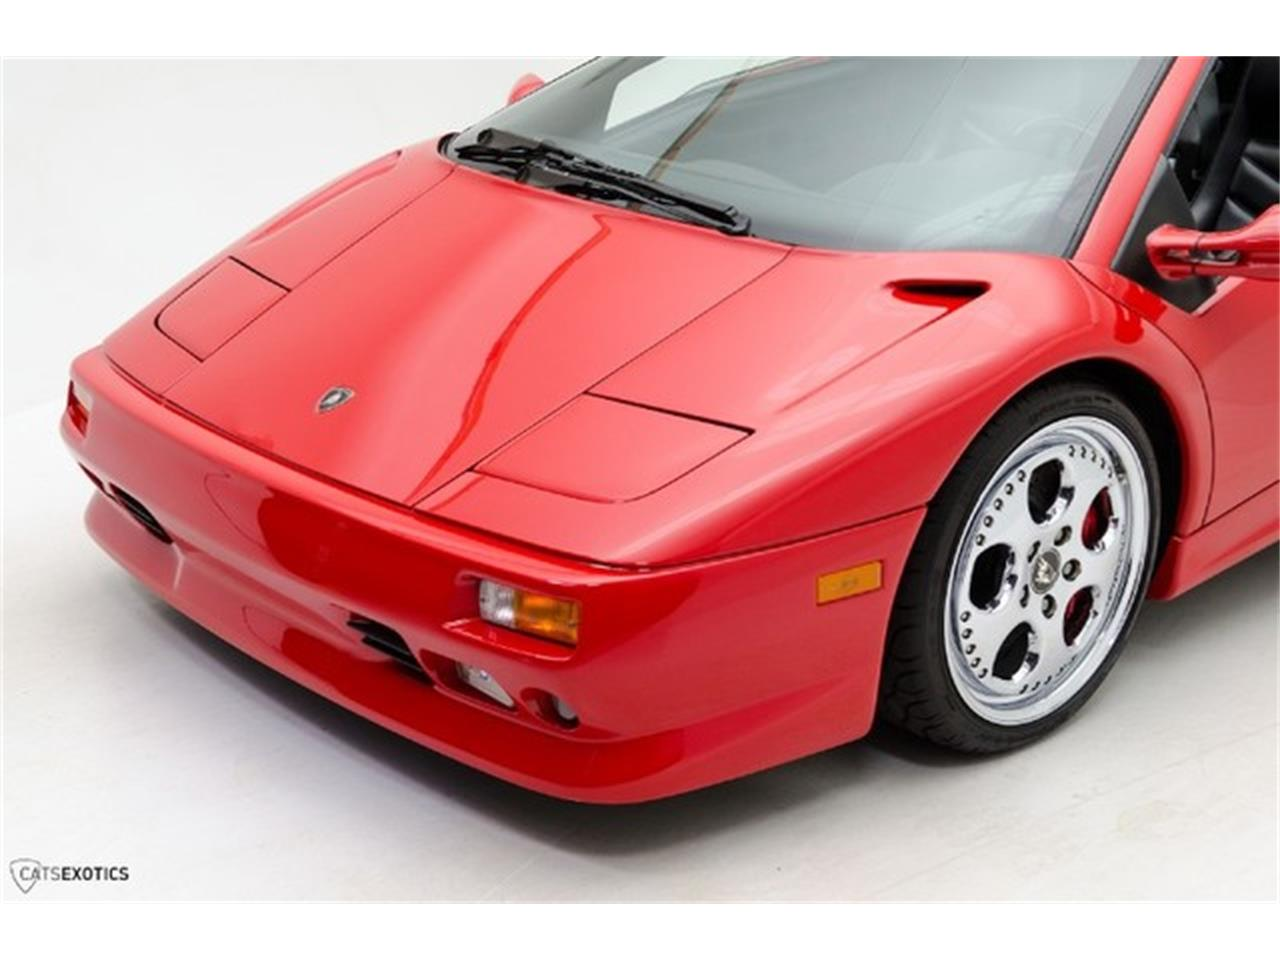 Large Picture of '98 Lamborghini Diablo located in Seattle Washington Auction Vehicle Offered by Cats Exotics - HZIS